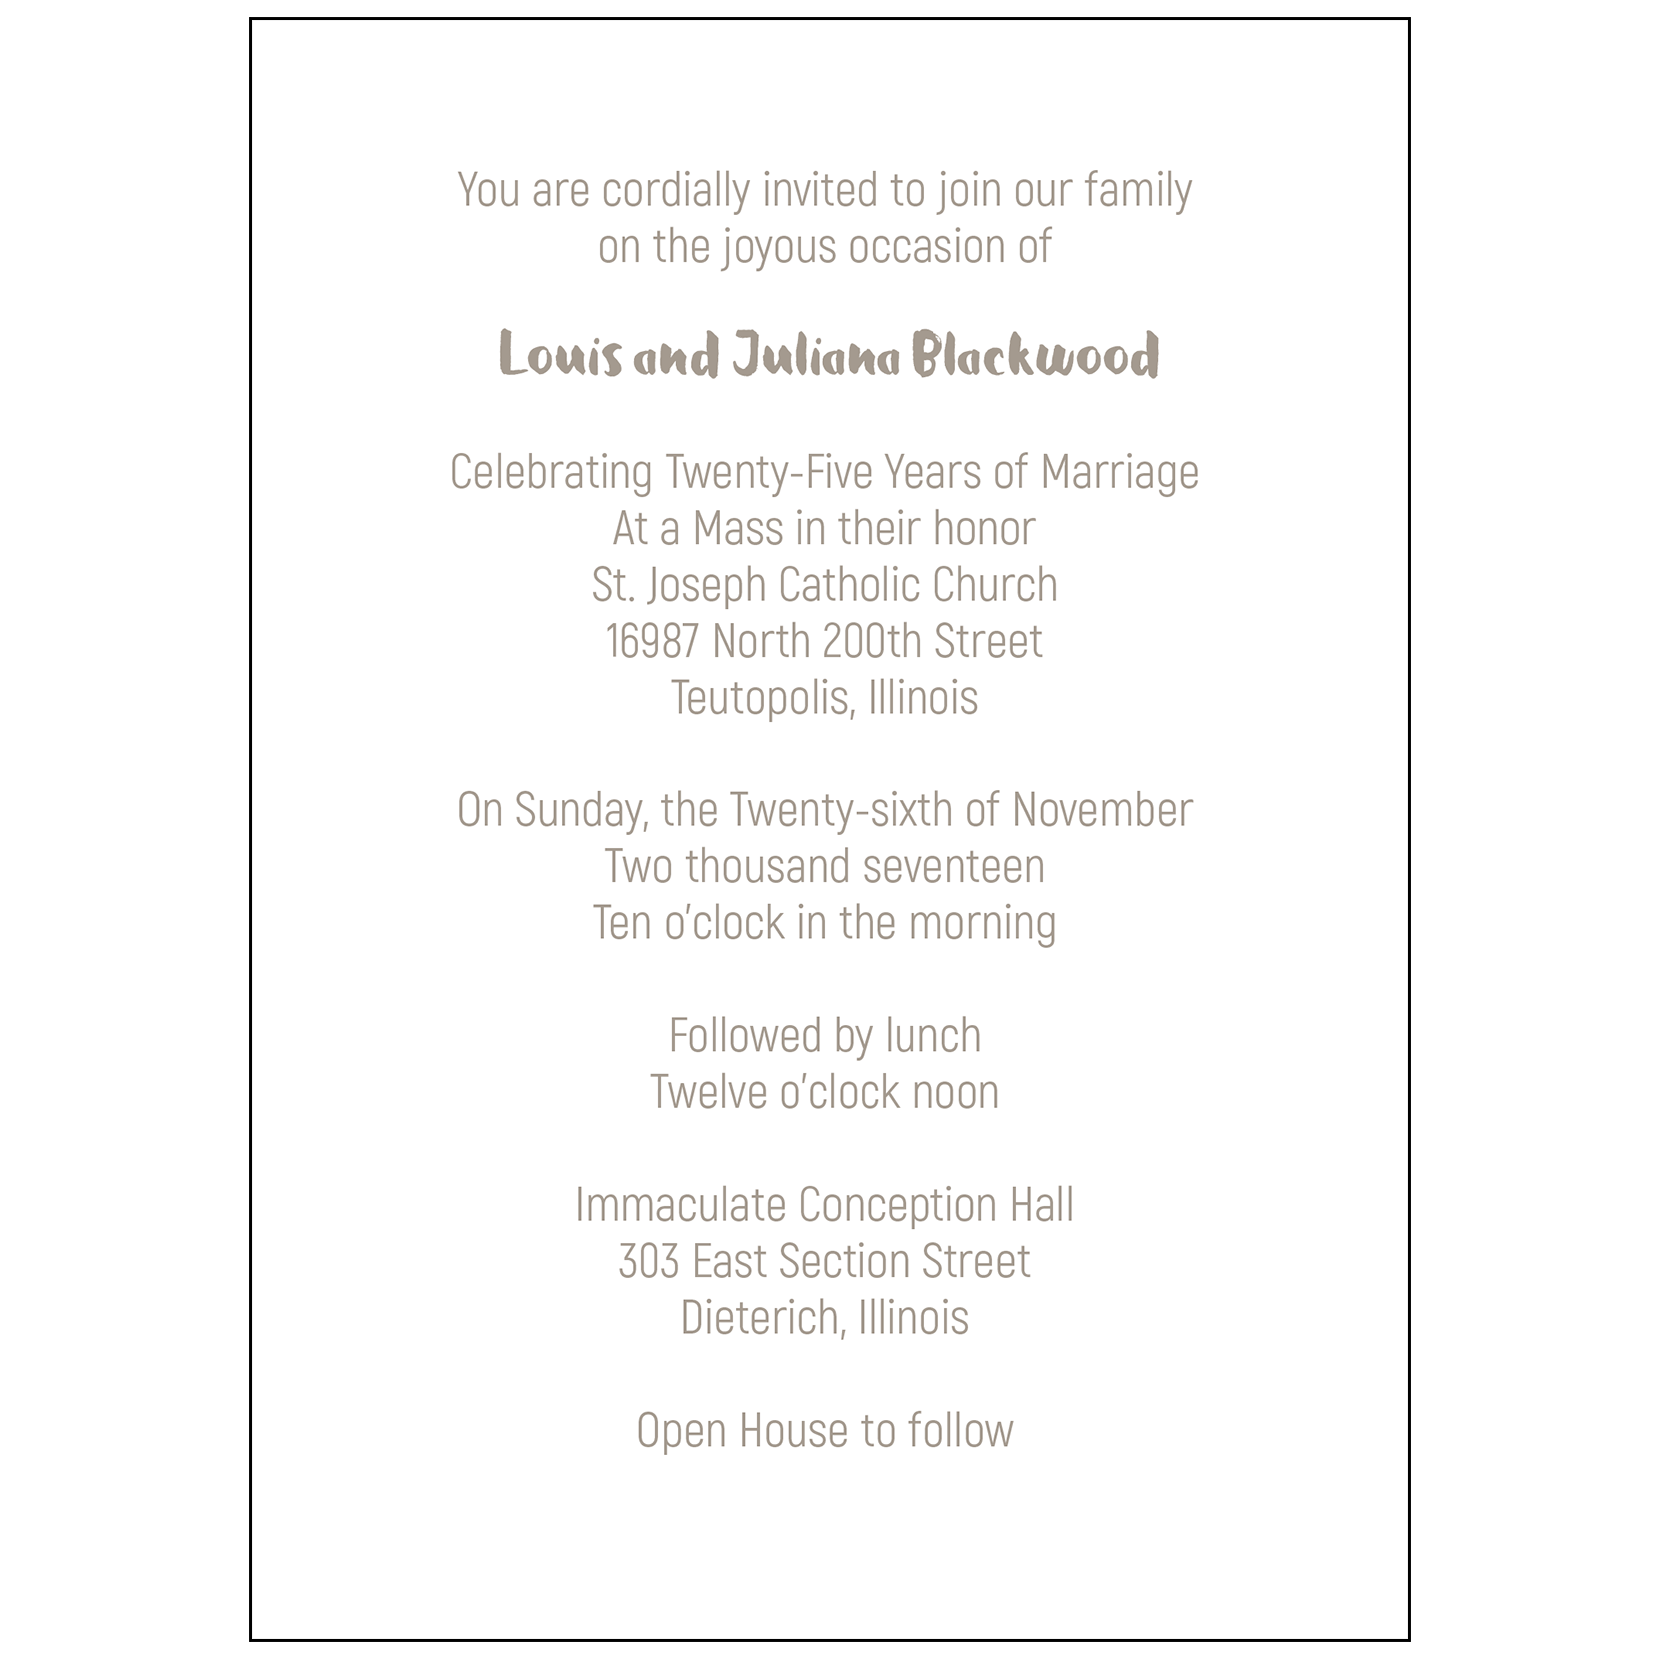 25th Wedding Anniversary Party Invitation, Style 1F – IPV Studio